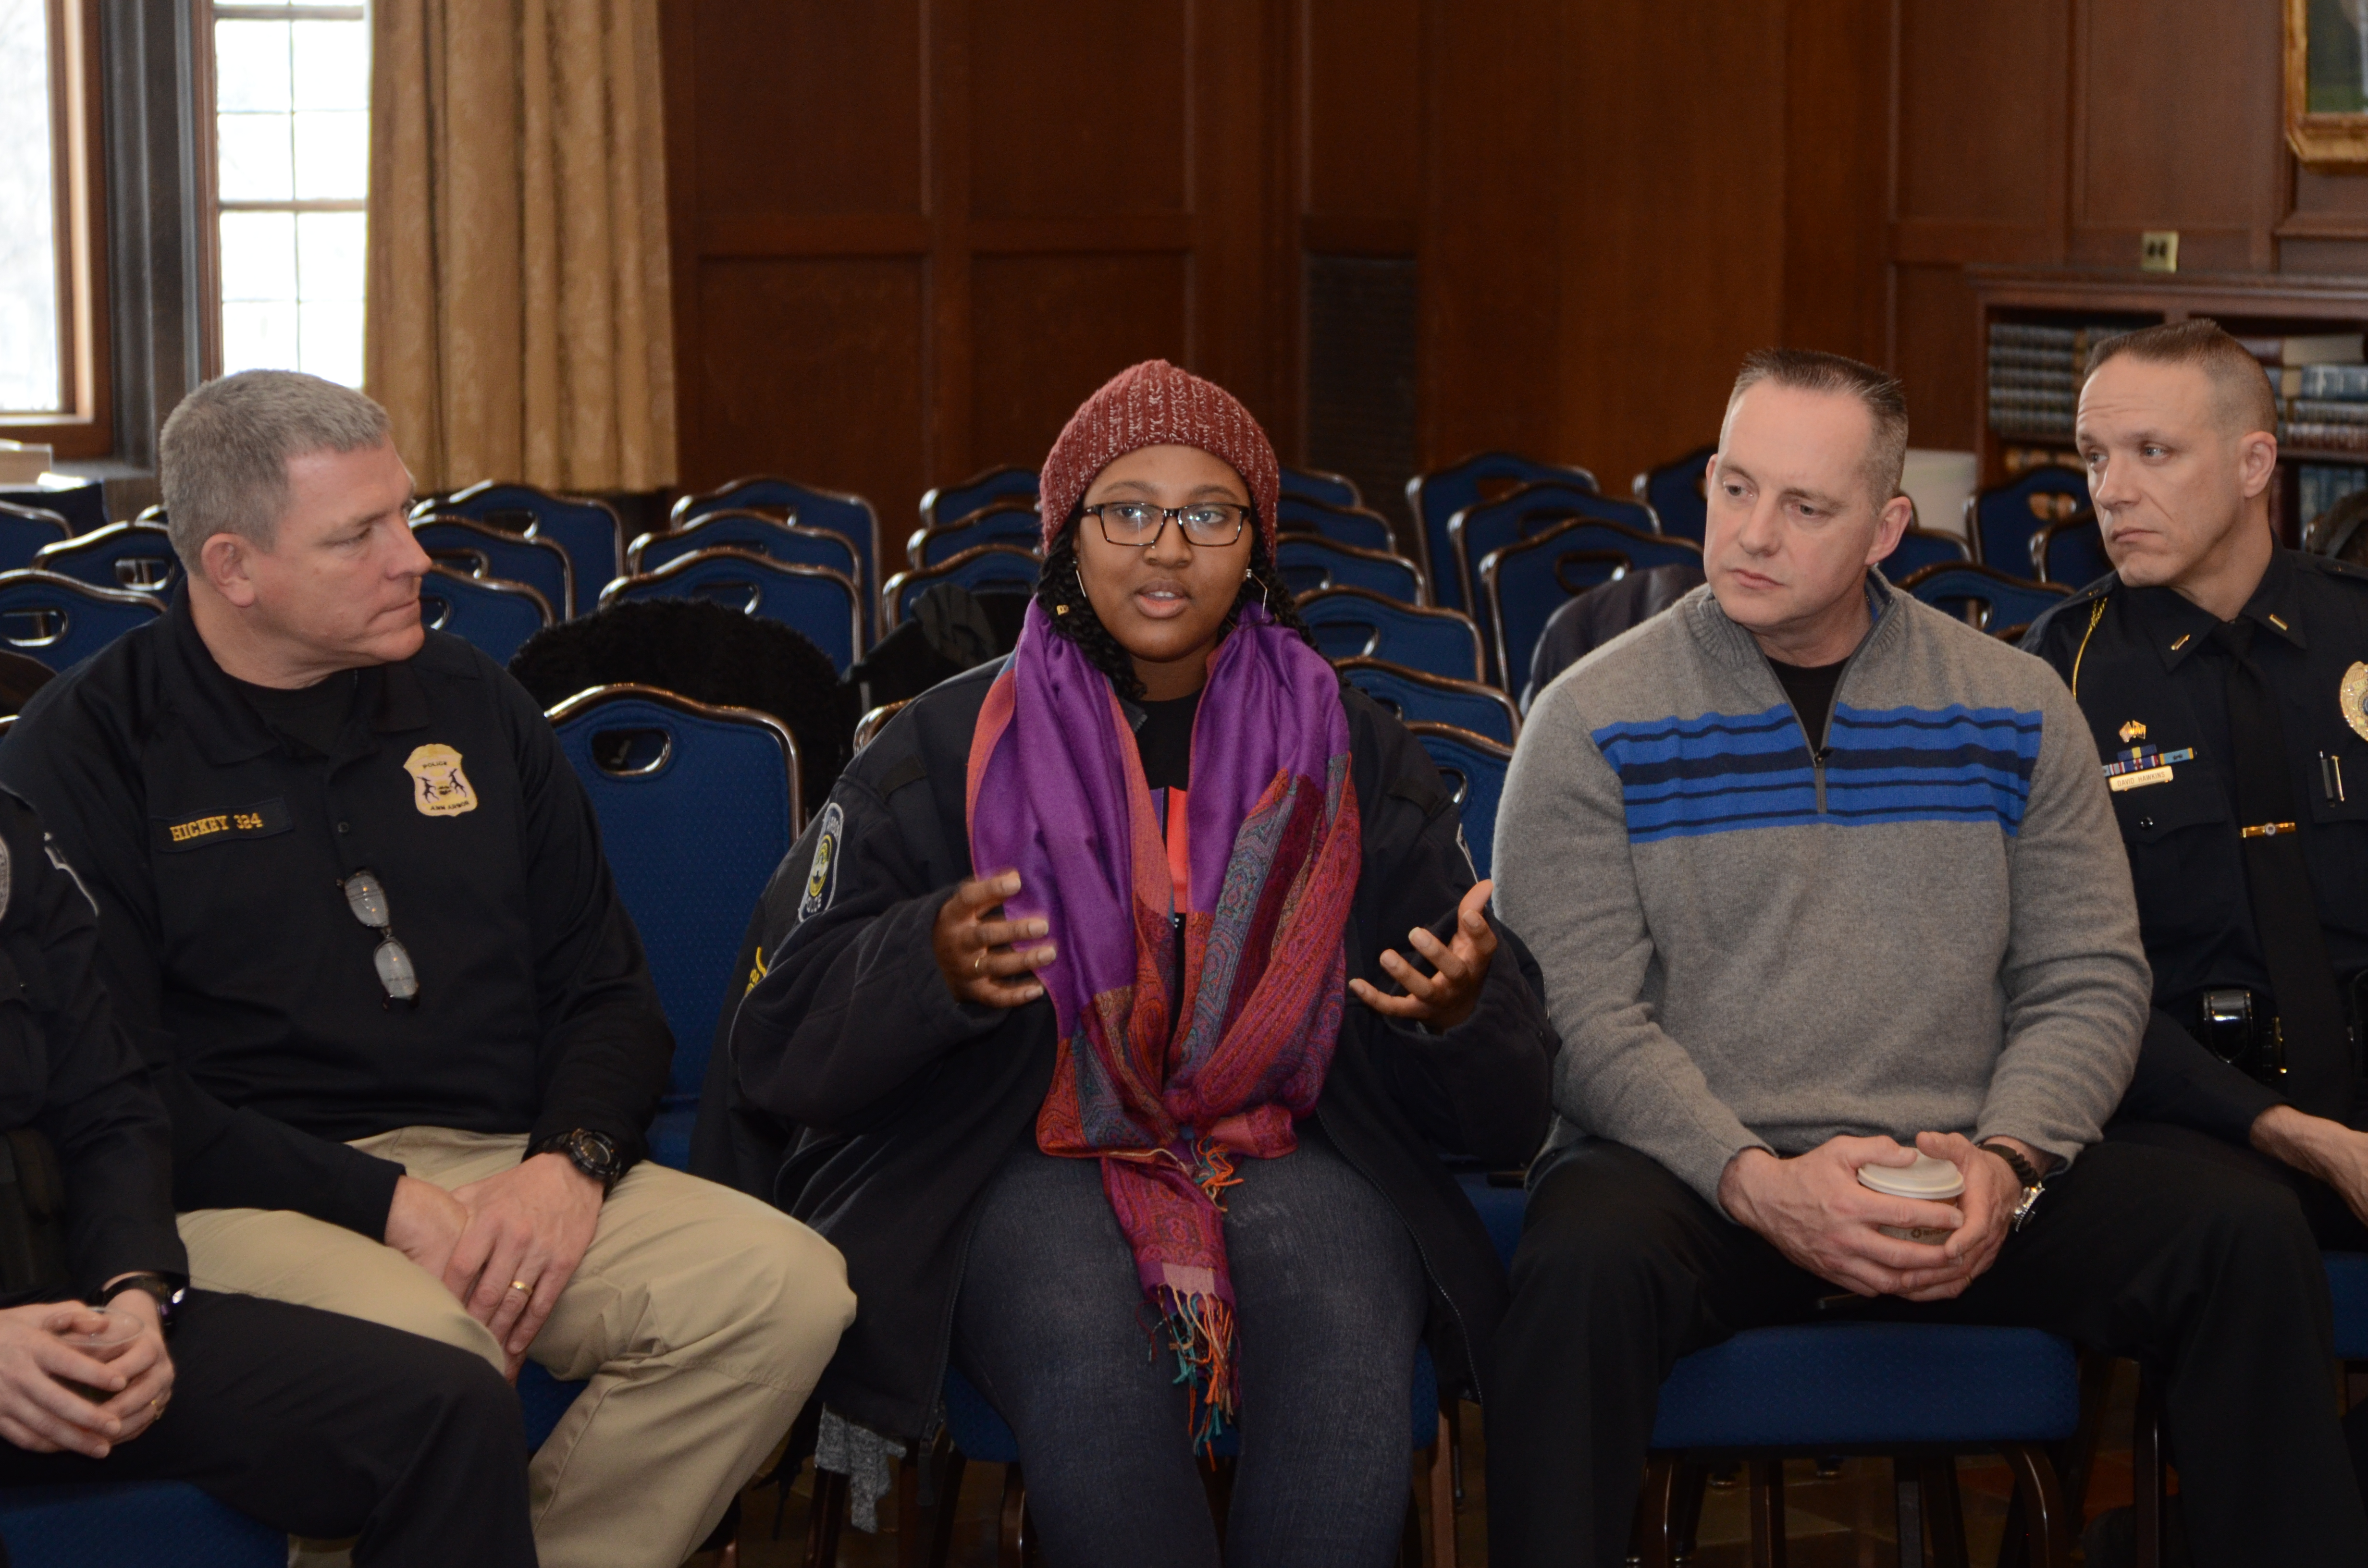 Students of Color met with local law enforcement to discuss the political and social climate on campus and nationally.